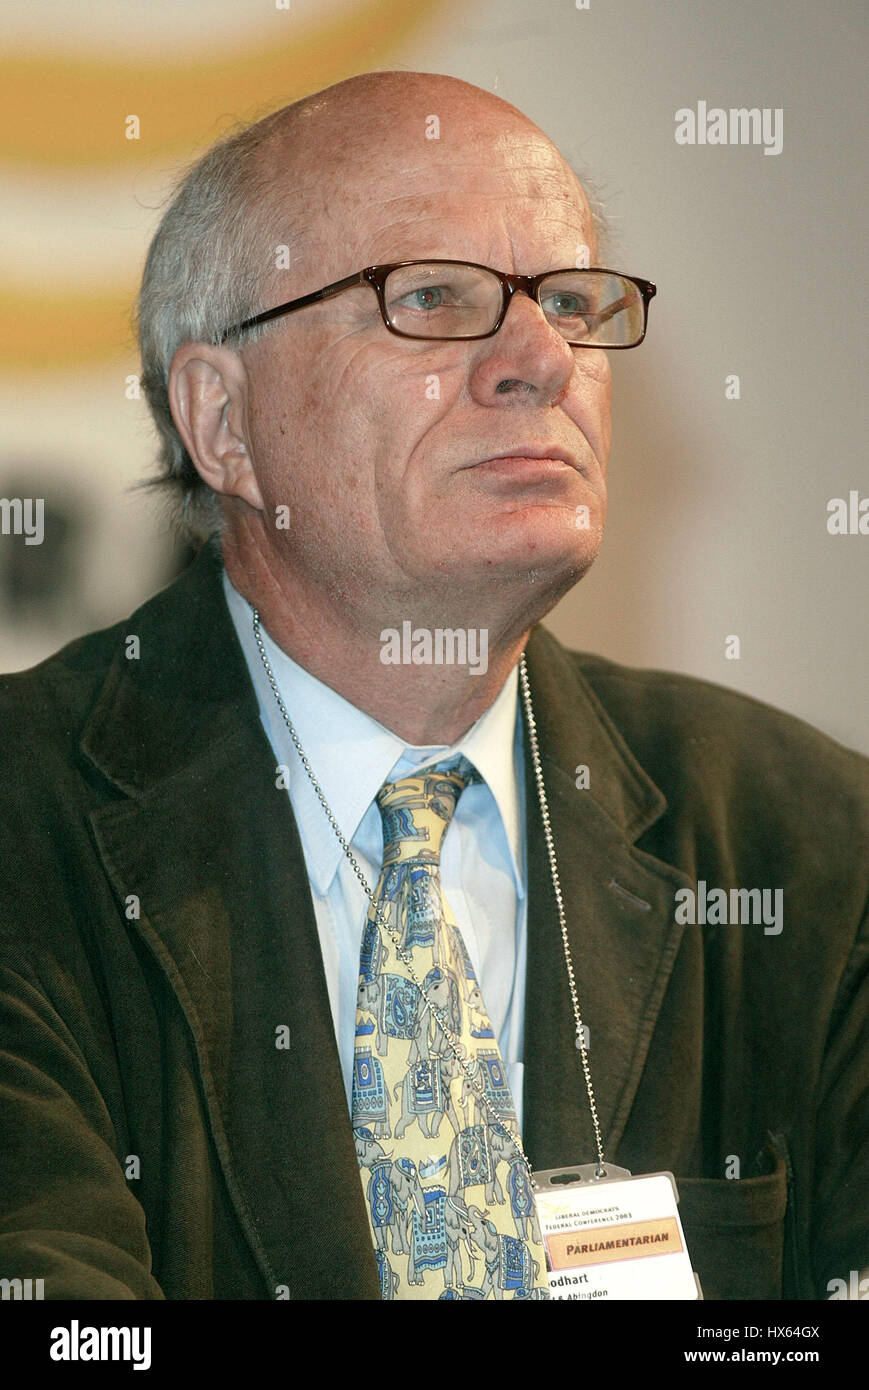 LORD GOODHART LIBERAL DEMOCRAT PARTY 24 September 2003 BRIGHTON ENGLAND - Stock Image